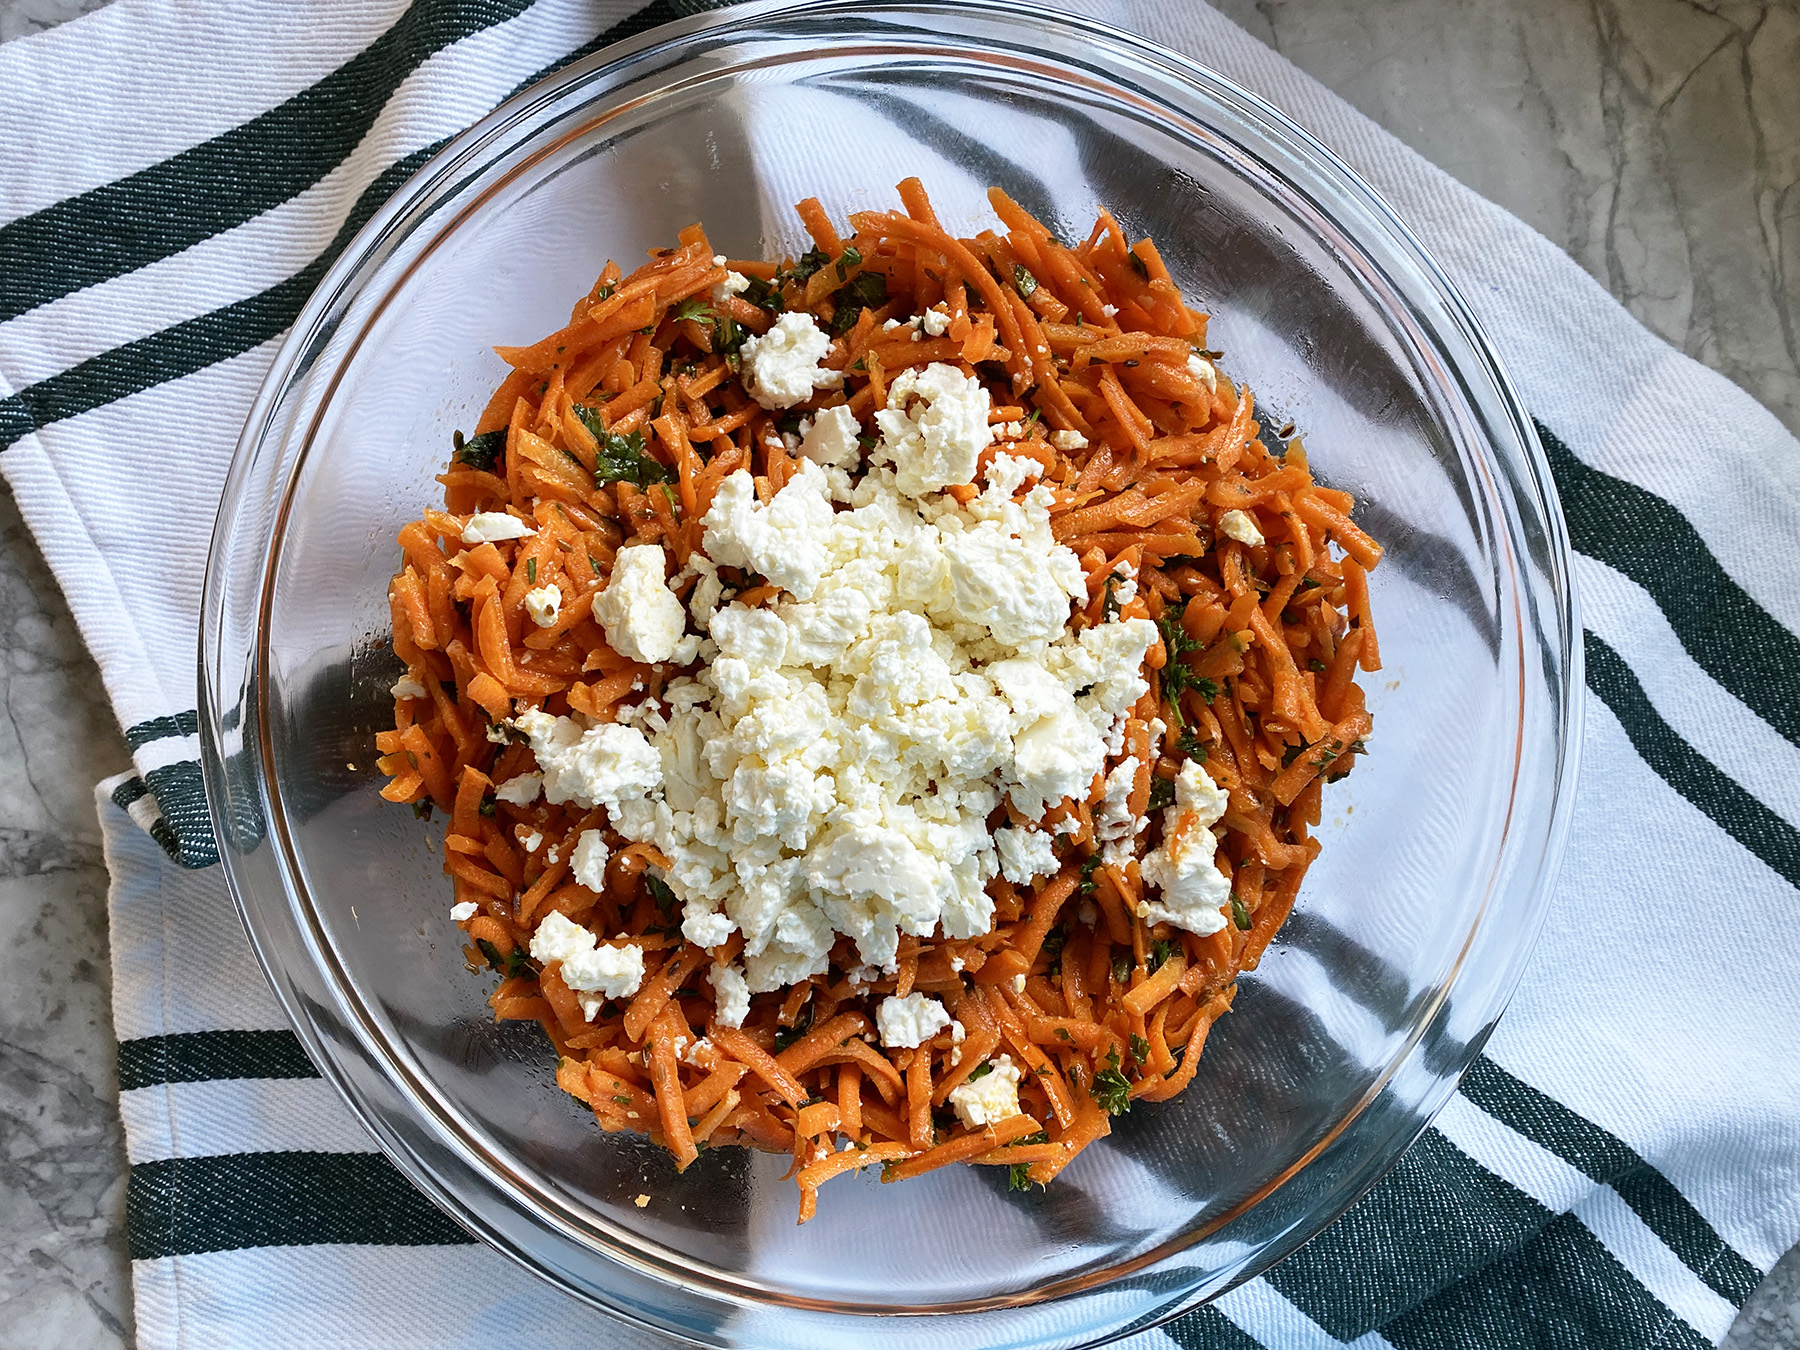 Carrot Salad (with Harissa, Feta and Mint)